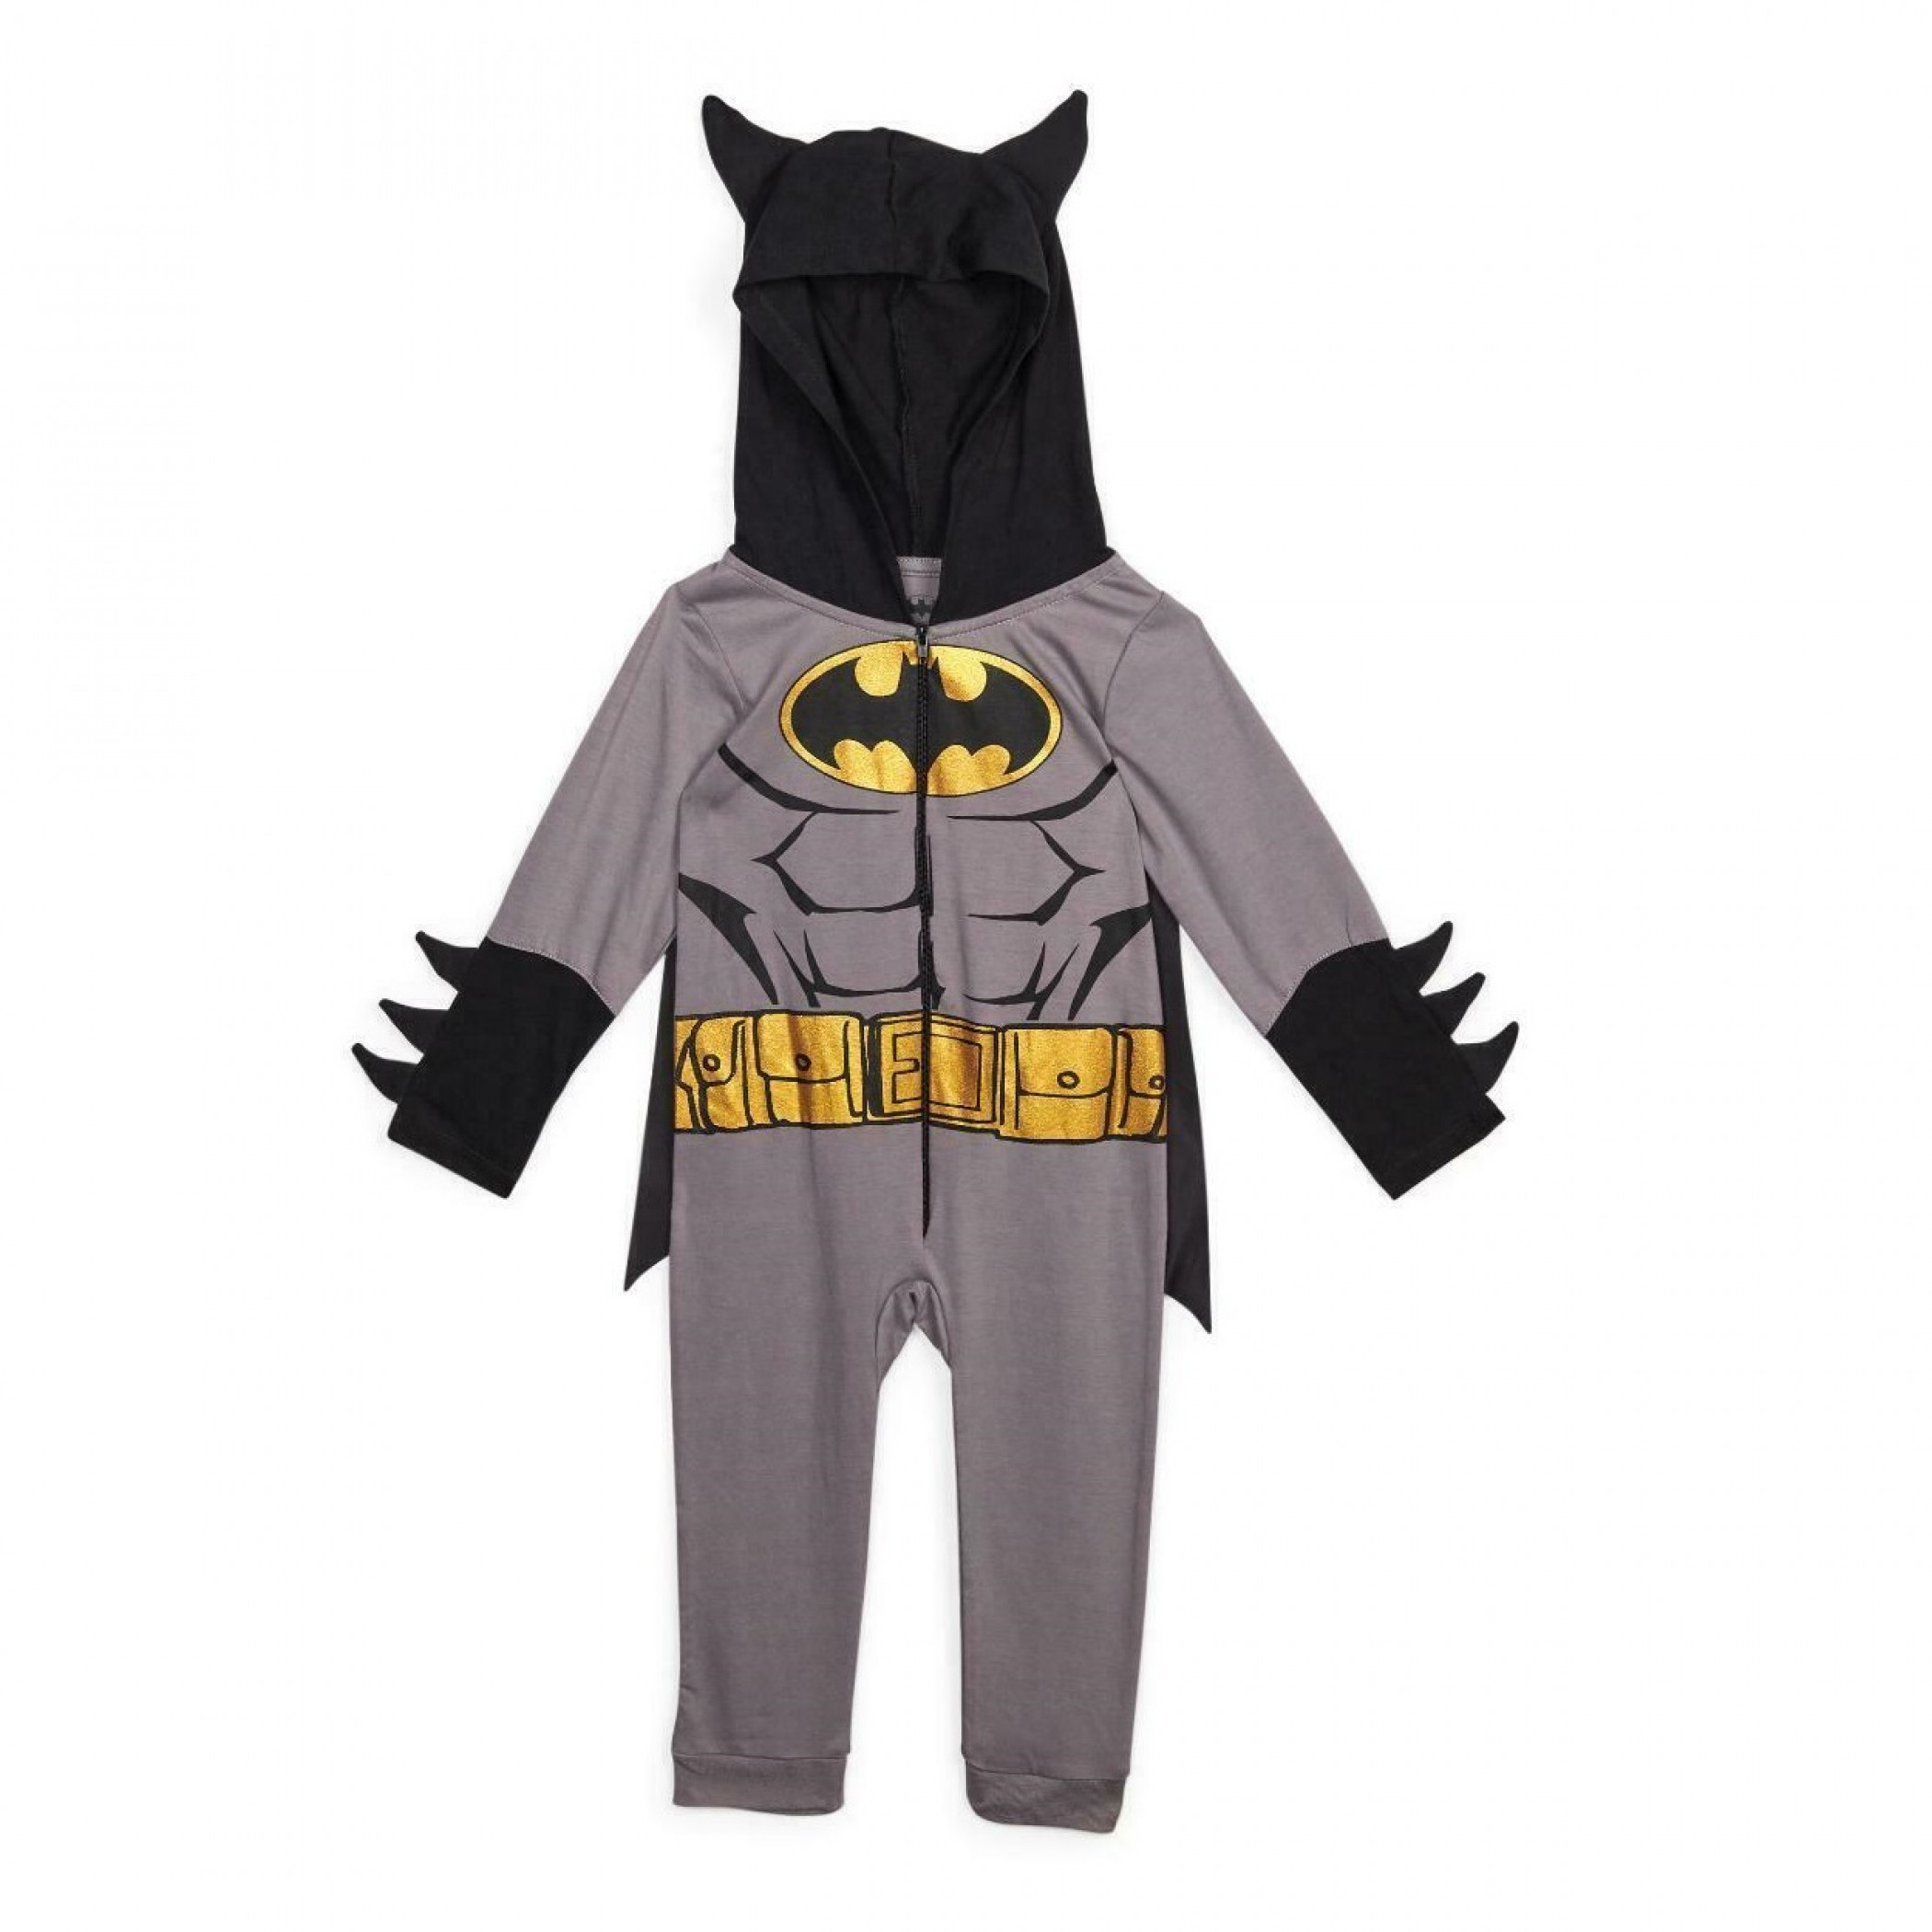 Batman Toddler Dress Up Costume Suit with Cape